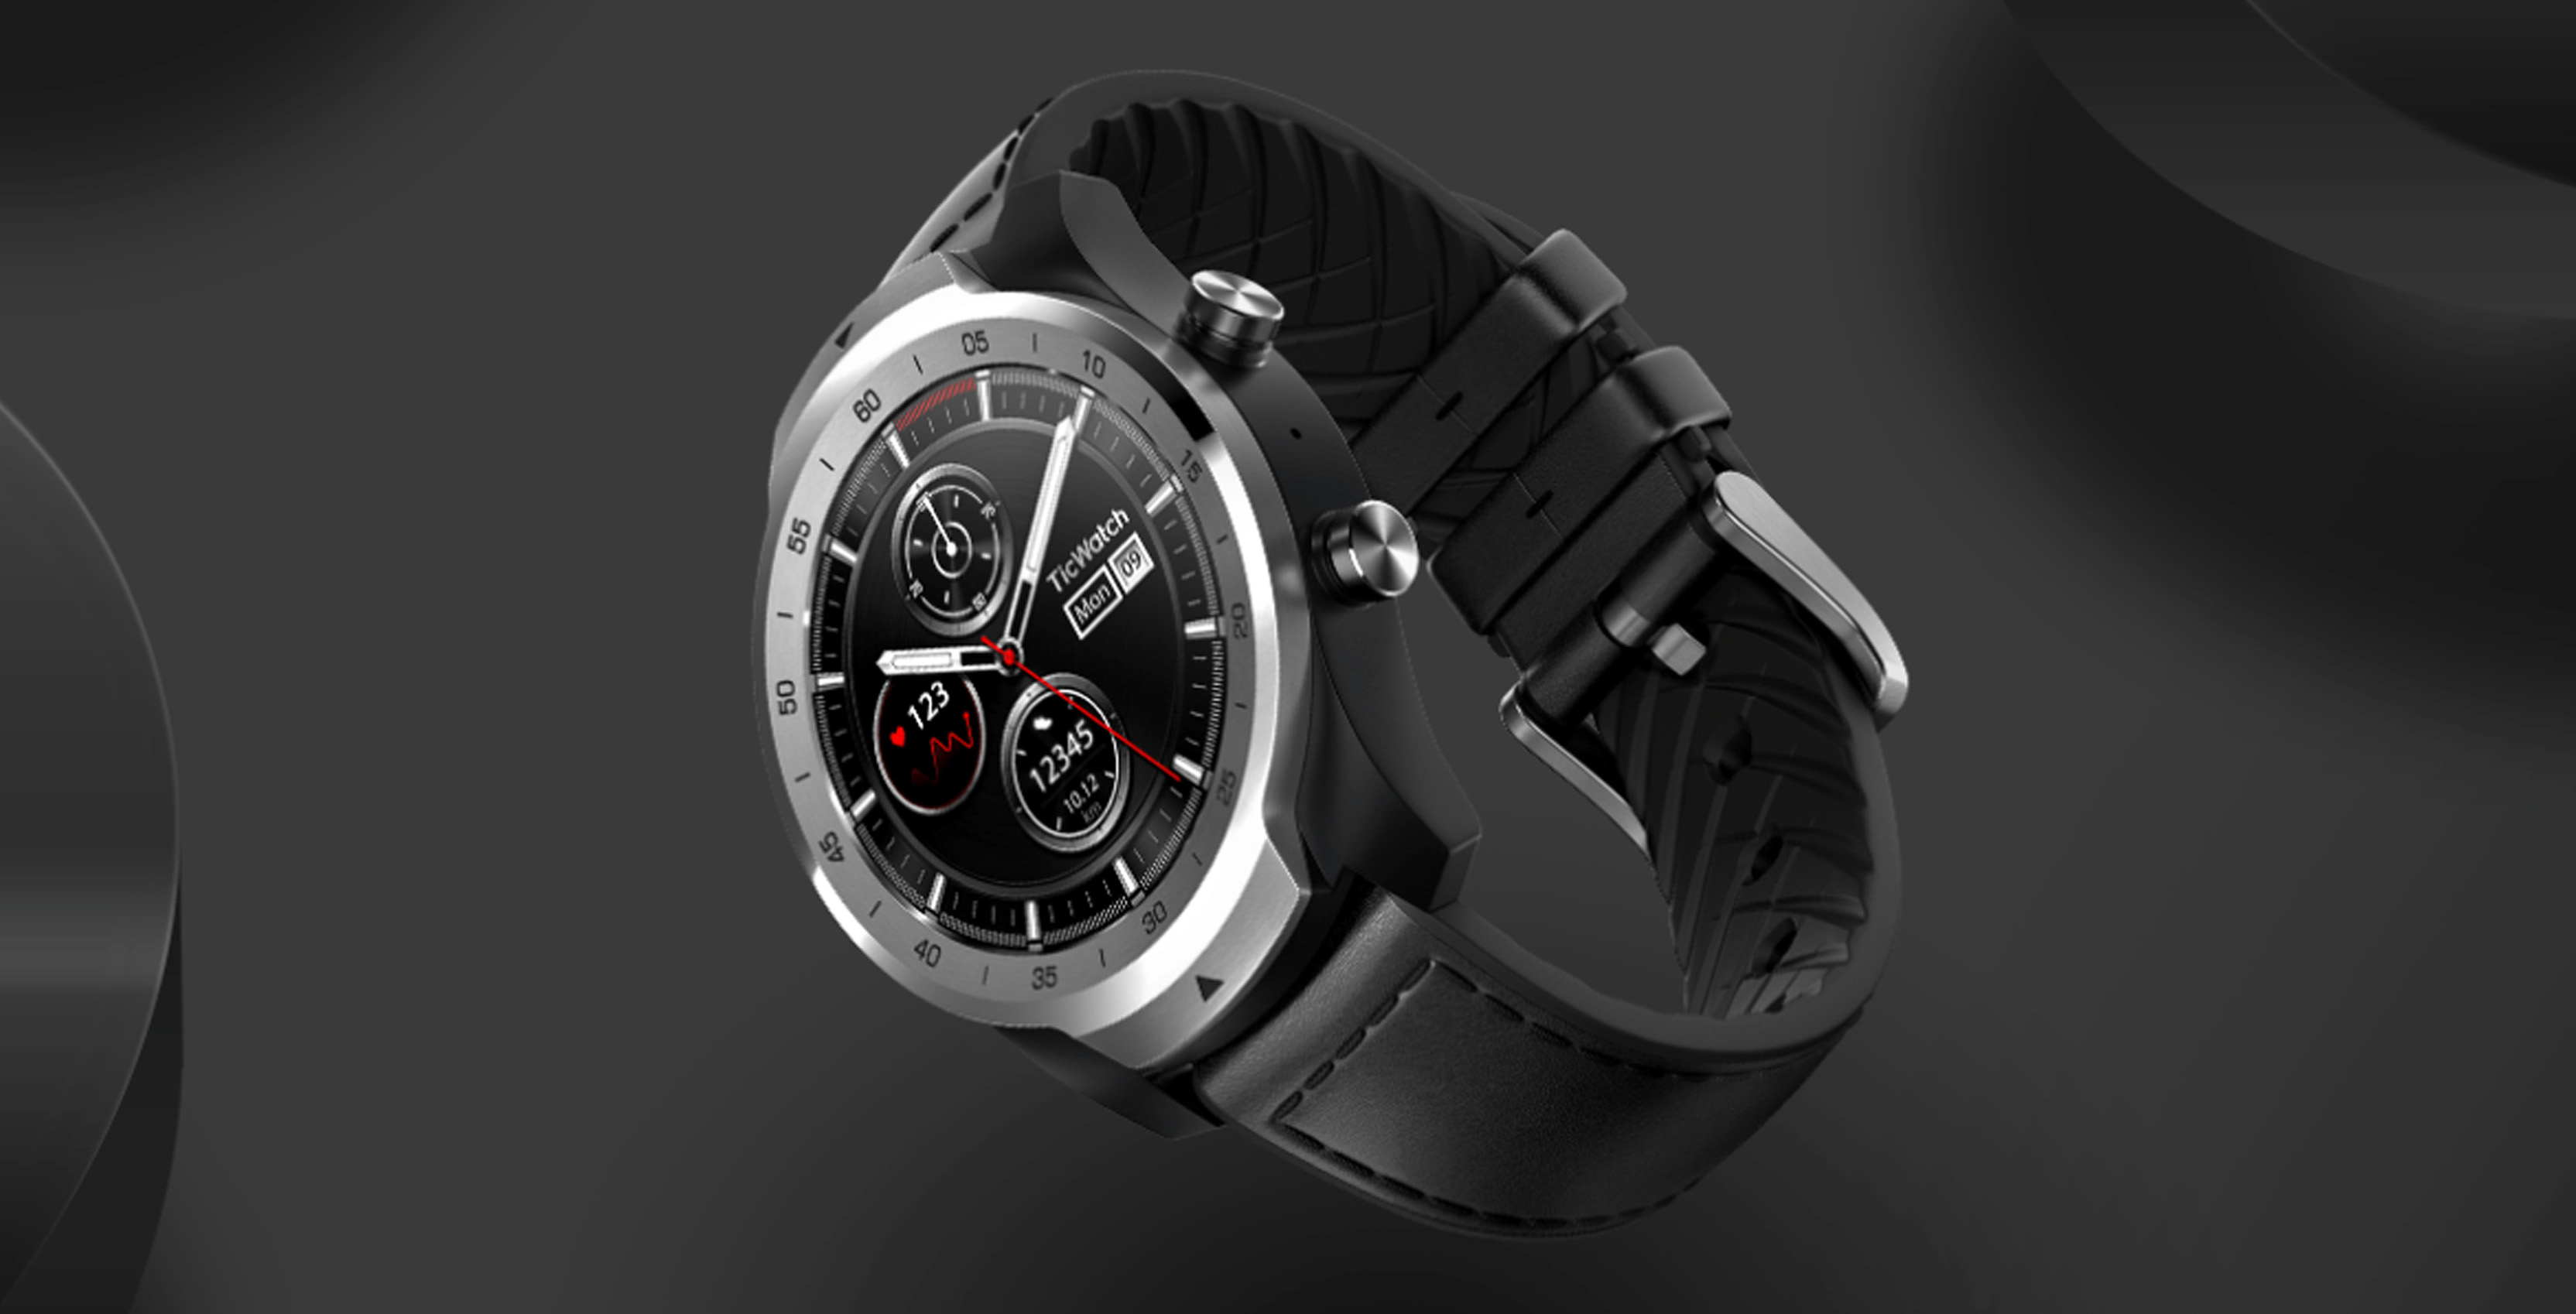 Mobvoi updates TicWatch C2, E2, S2 and Pro to reduce lag, upgrade